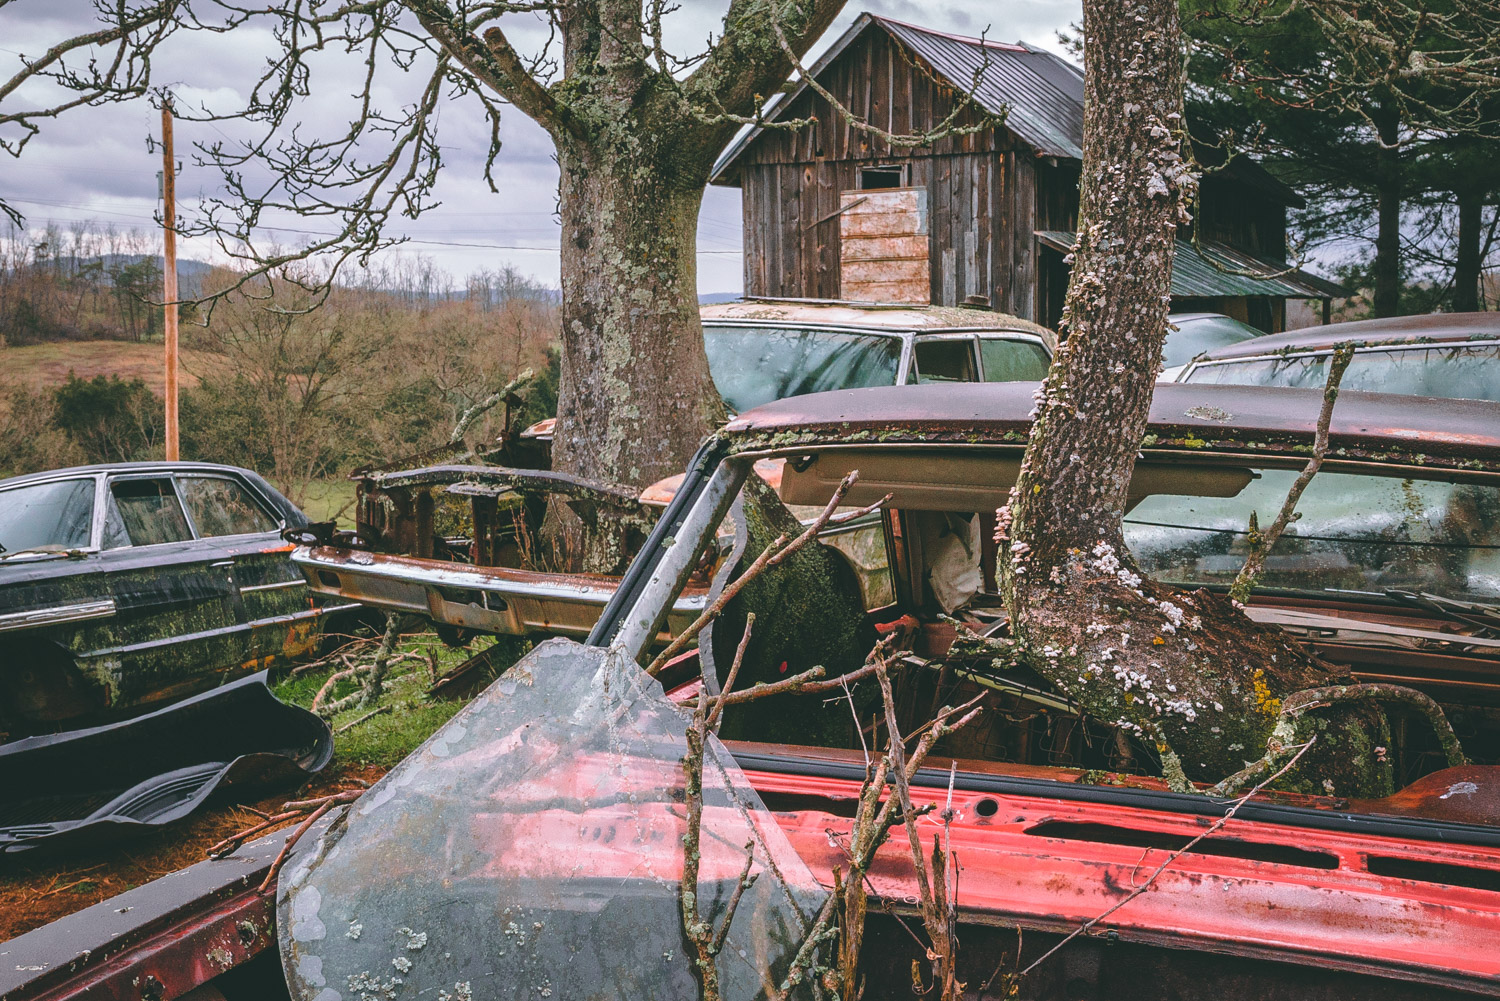 Barn Find Hunter trees through cars in yard